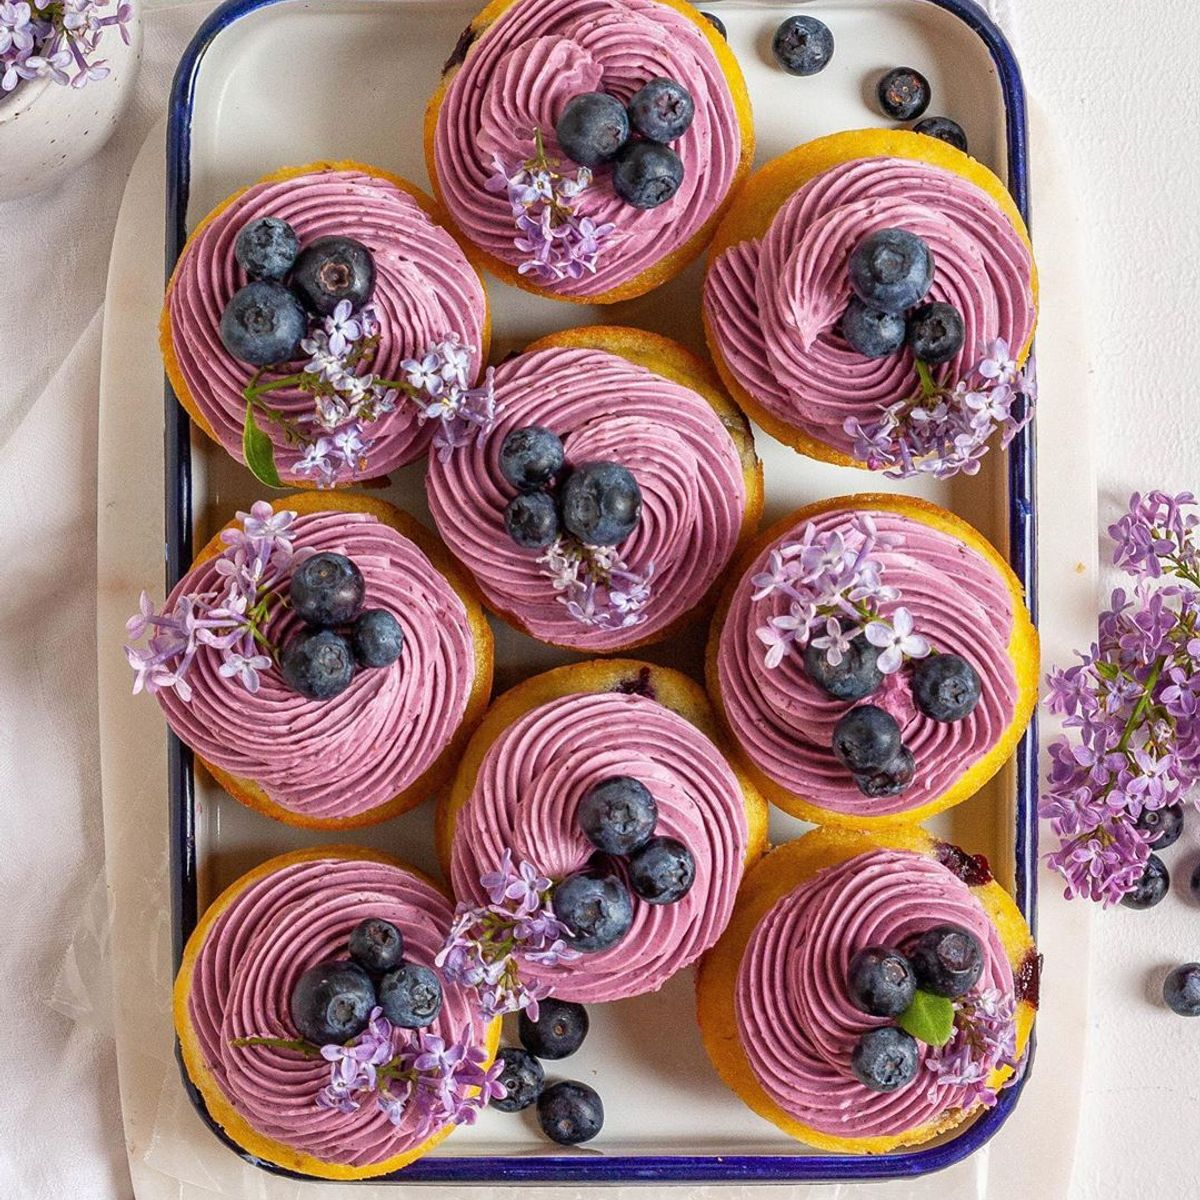 50 of the Cutest Cupcakes Youll Ever See ...